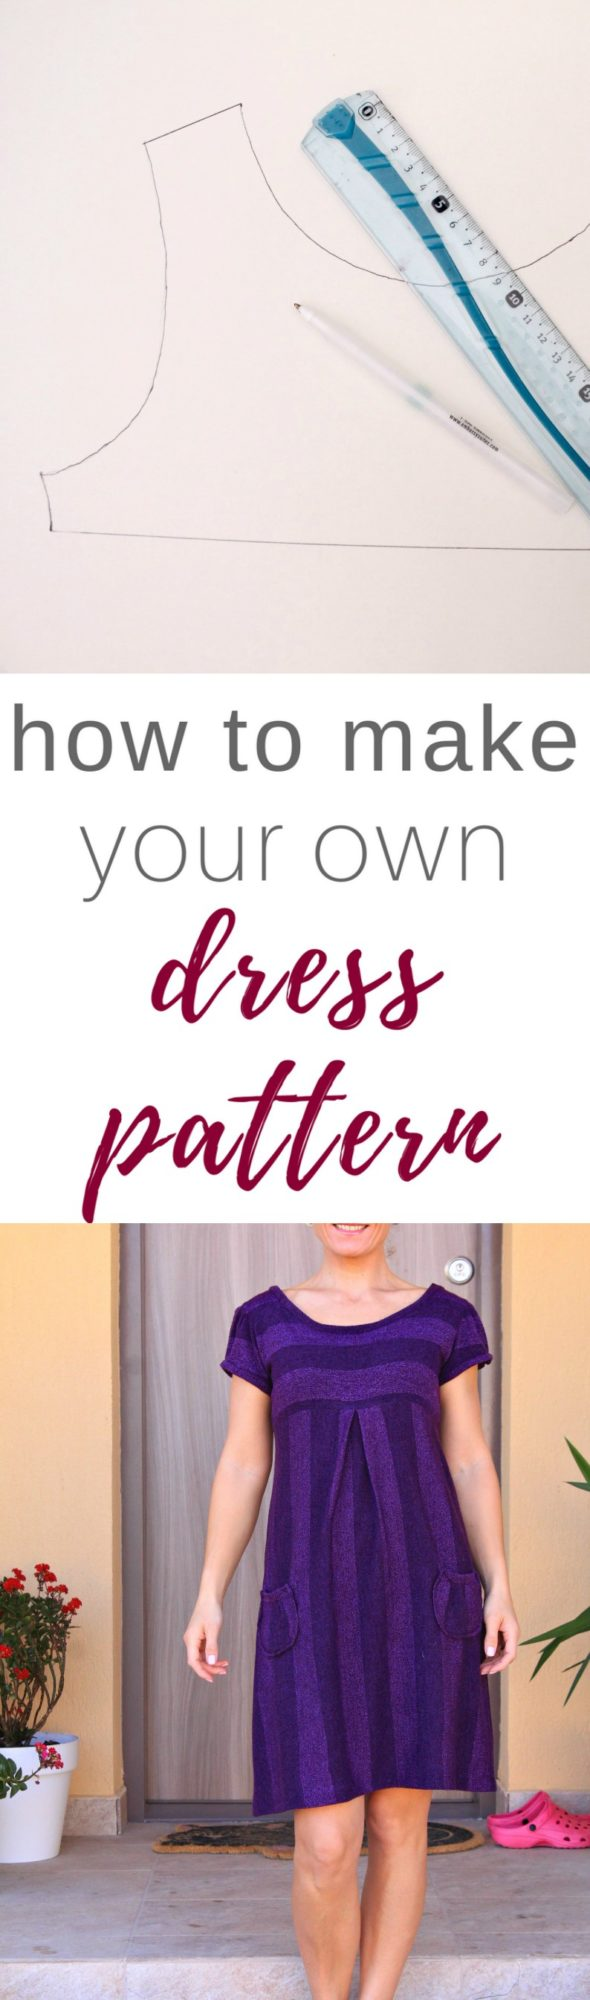 Dress pattern making